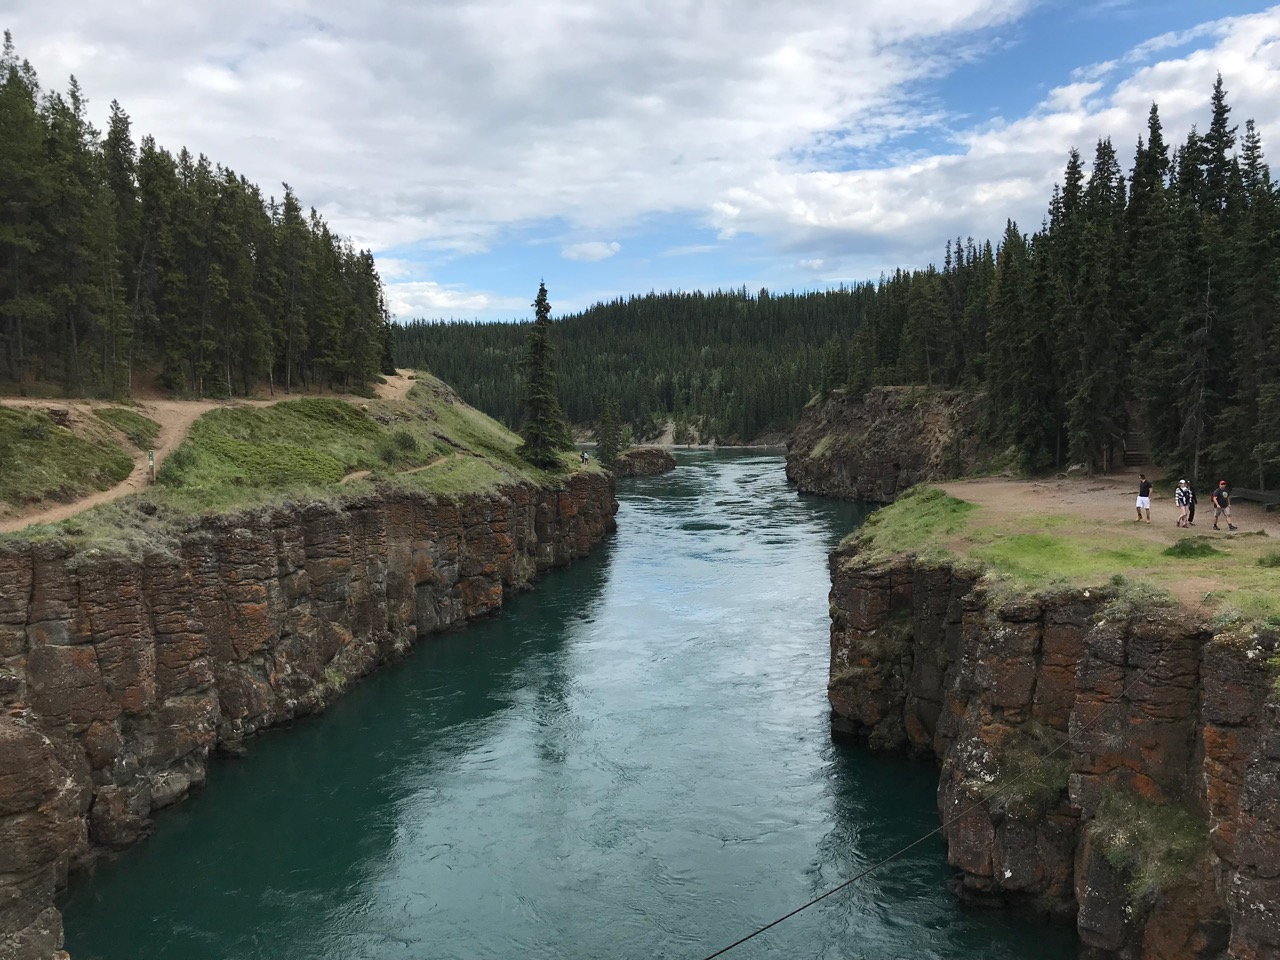 This used to be one of the Yukon's most dangerous rapids. Now after a dam was installed downstream, the water is still fast but not as white.